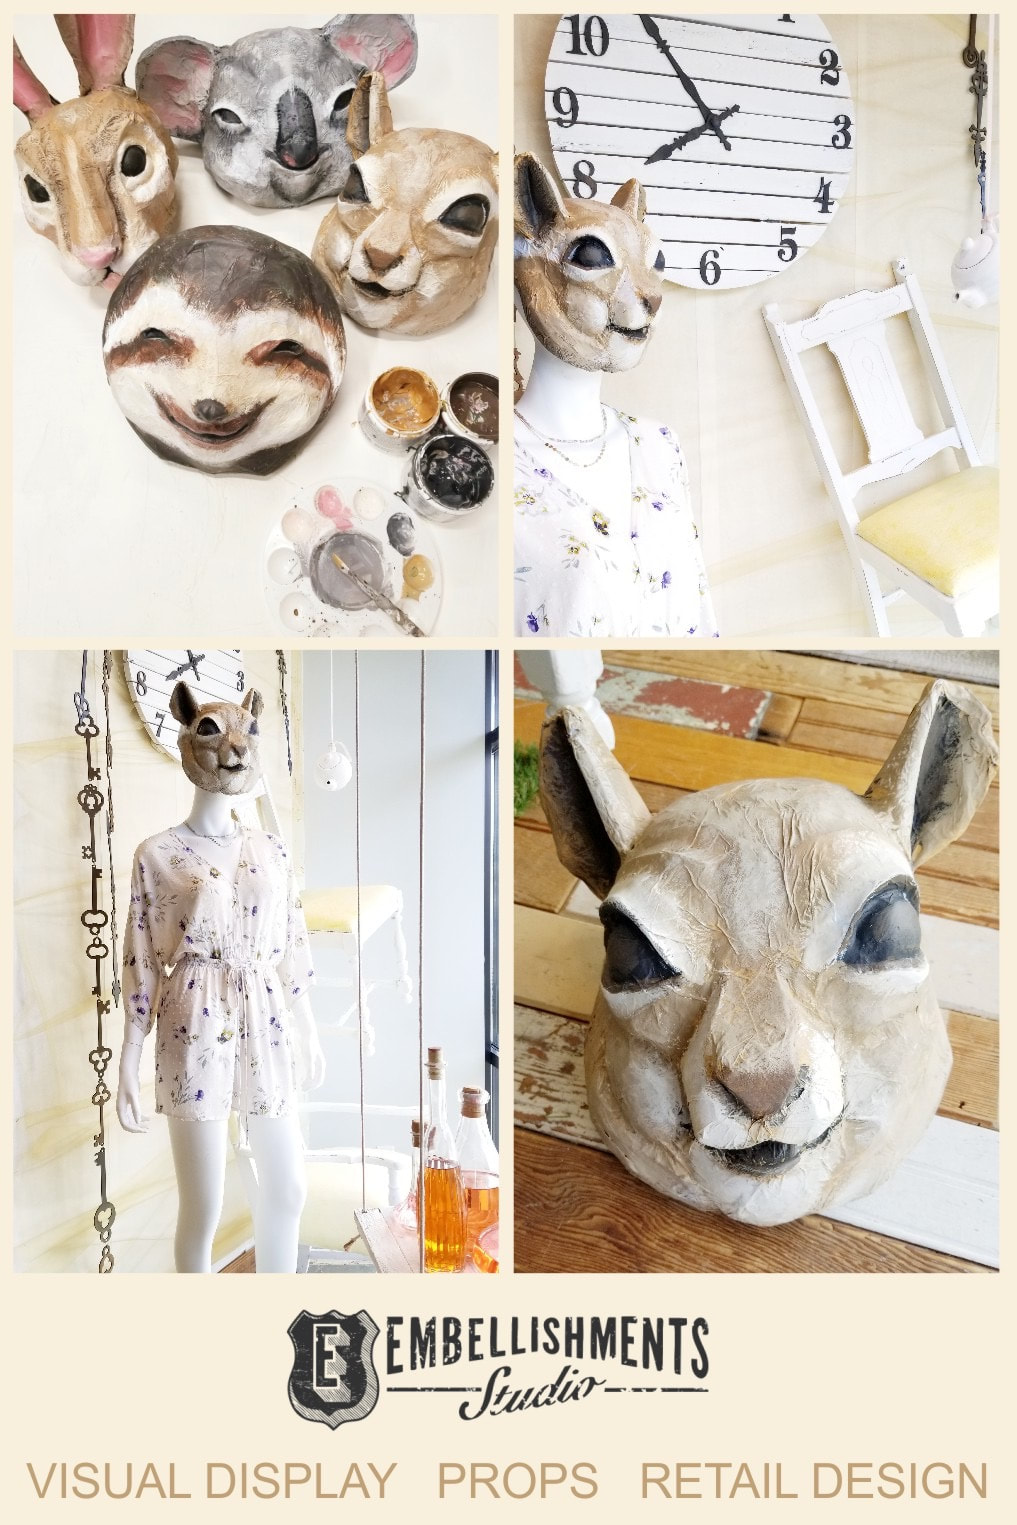 Wonderland Spring Store Display featuring a paper mache squirrel chipmunk and other animal masks by Embellishments Studio